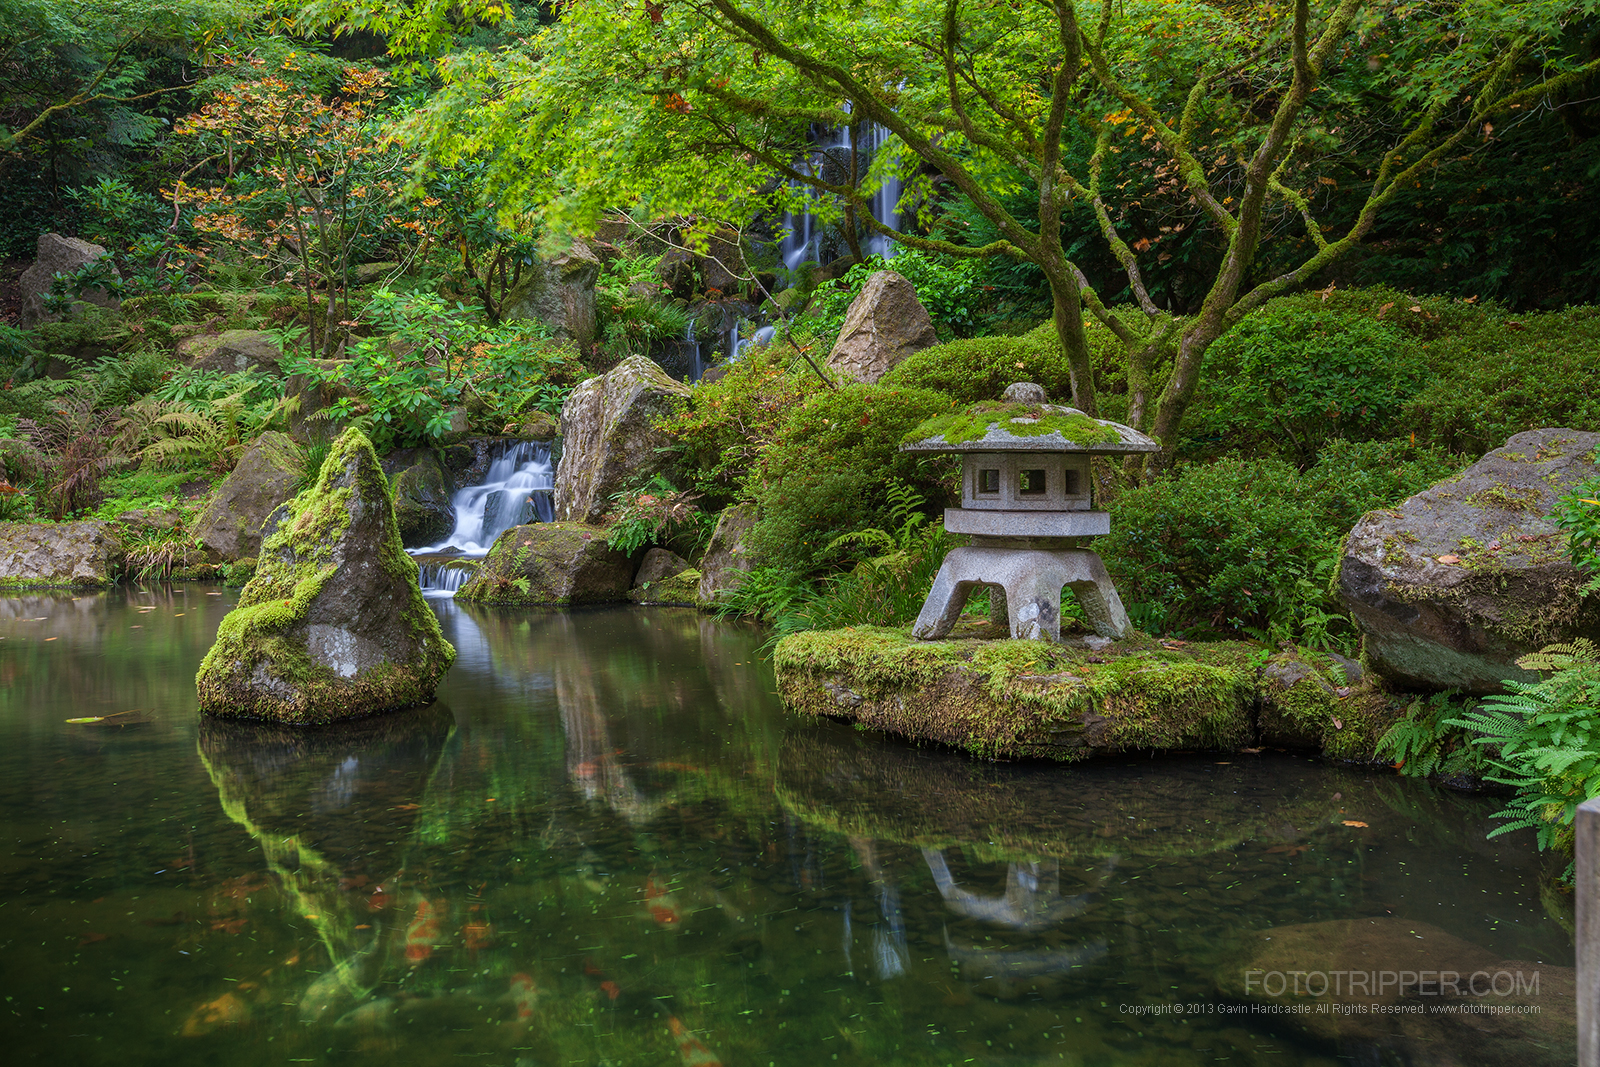 How to shoot portland japanese garden fototripper for Japanese pond